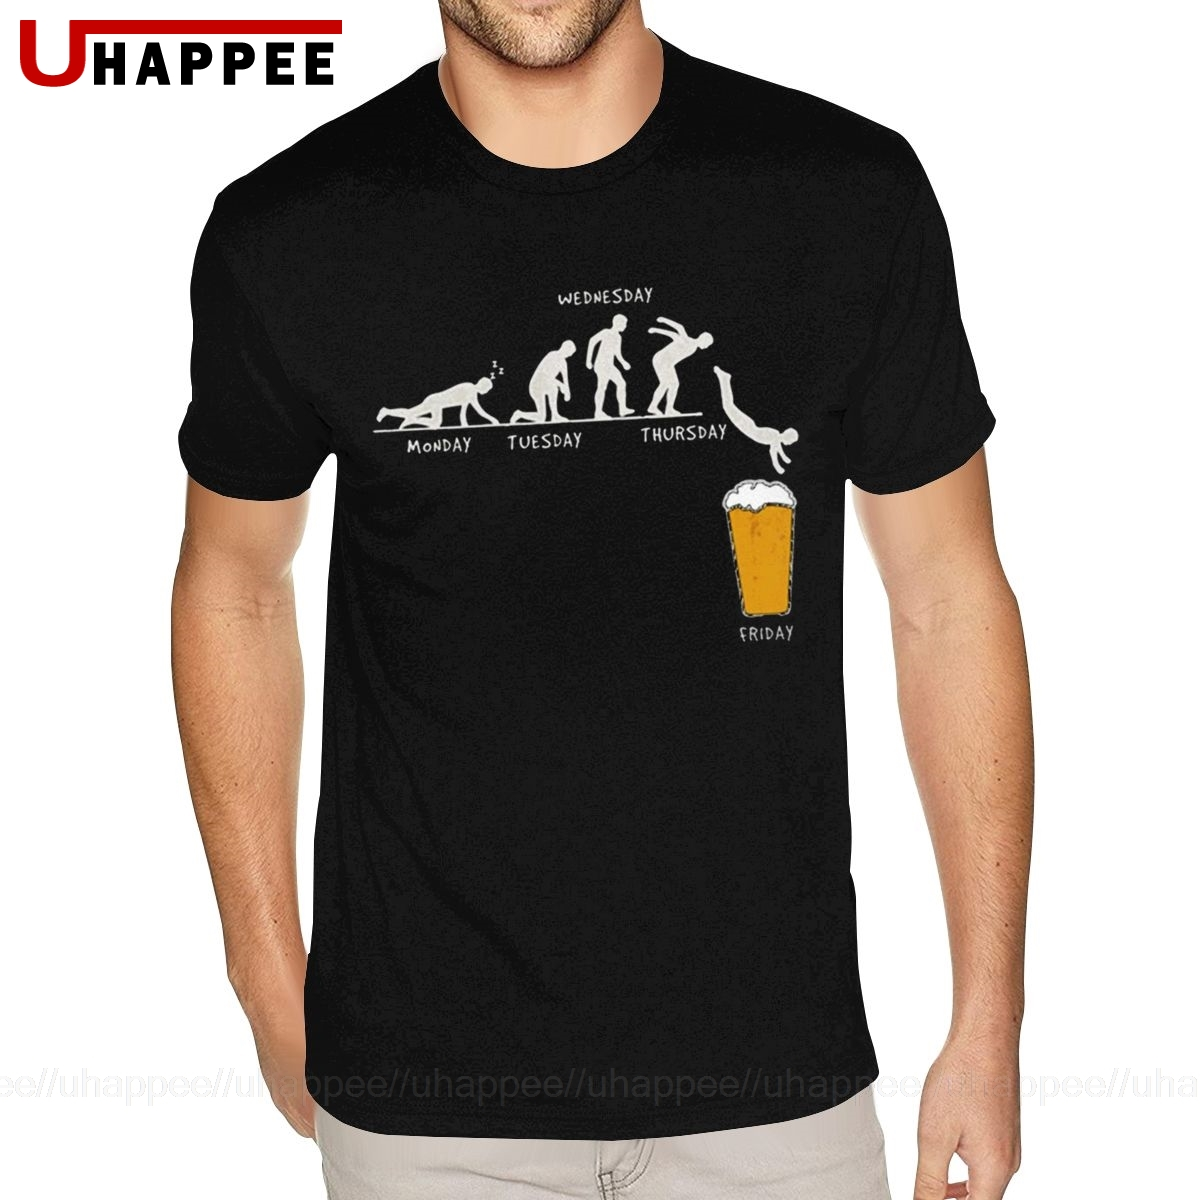 Week Craft Beer T Shirt Drunk Tee Alcohol Drinking Clothes T Shirts Guy 2020 Man Short Sleeved Cheap Price Branded Clothing image